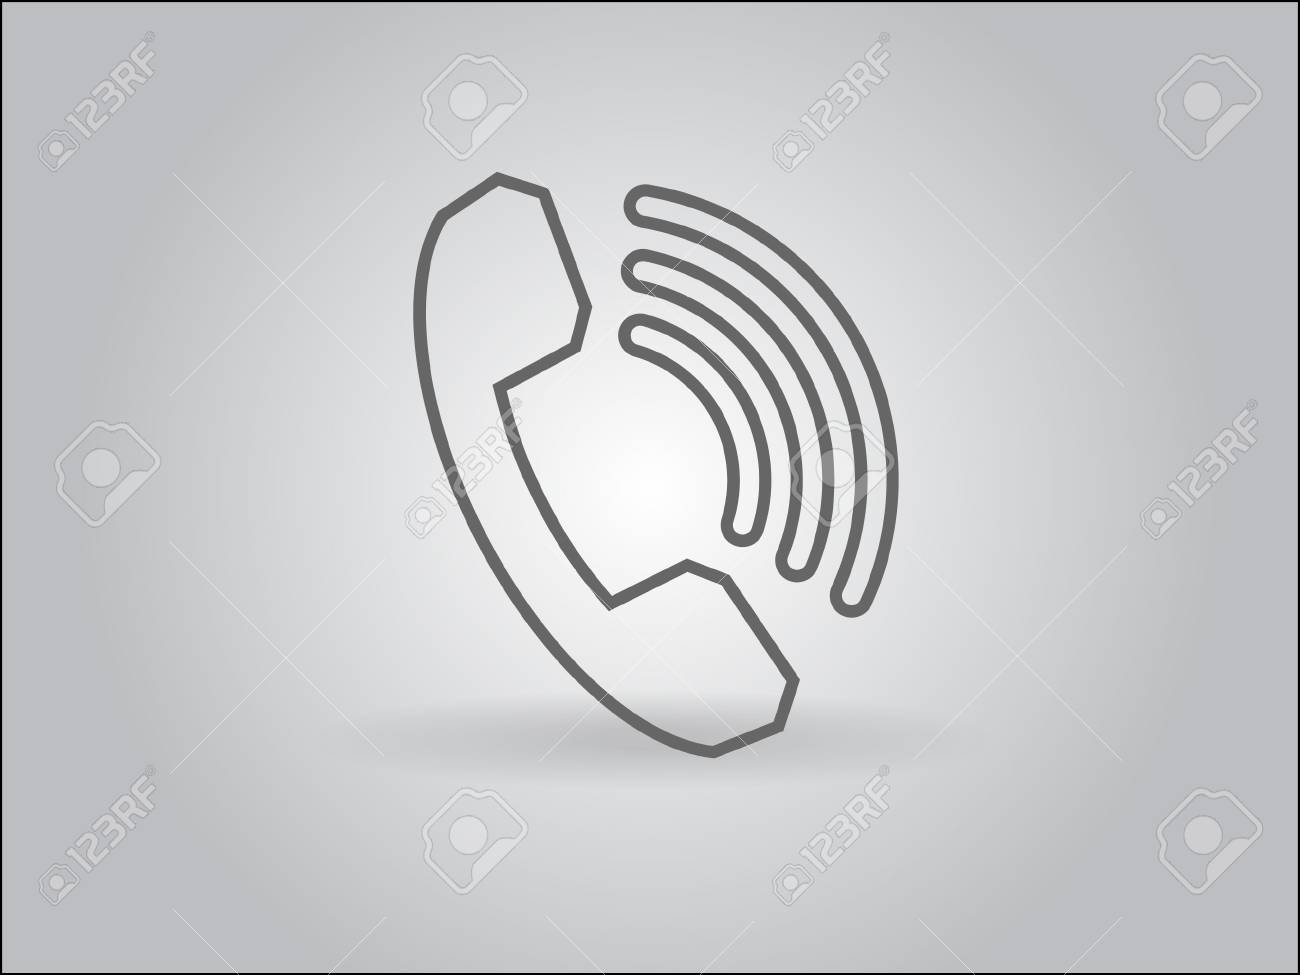 Flat icon of a phone Stock Vector - 29186700